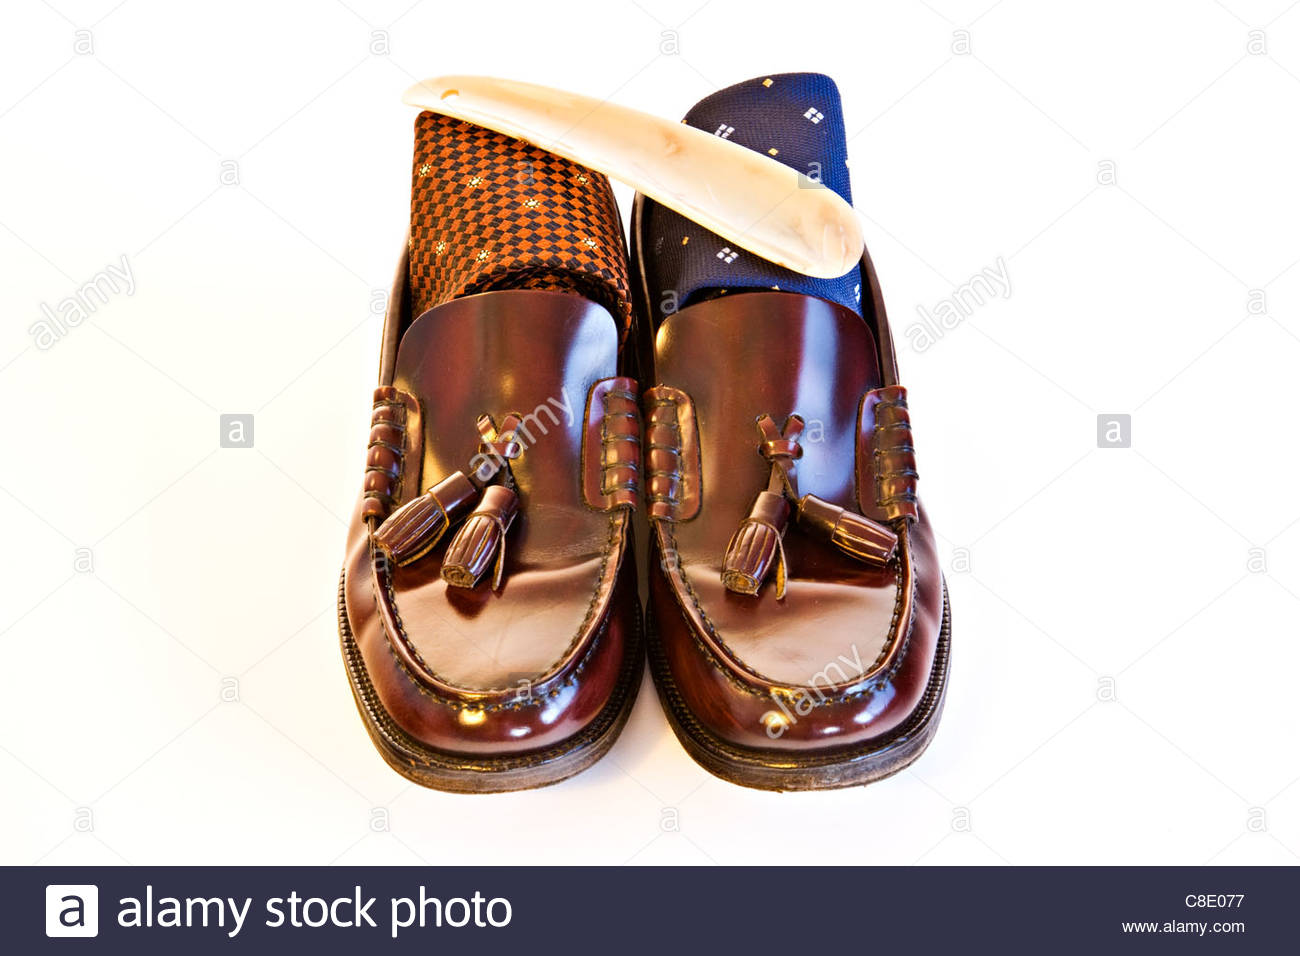 Men's brown leather shoes with ties and shoe horn on white background - Stock Image